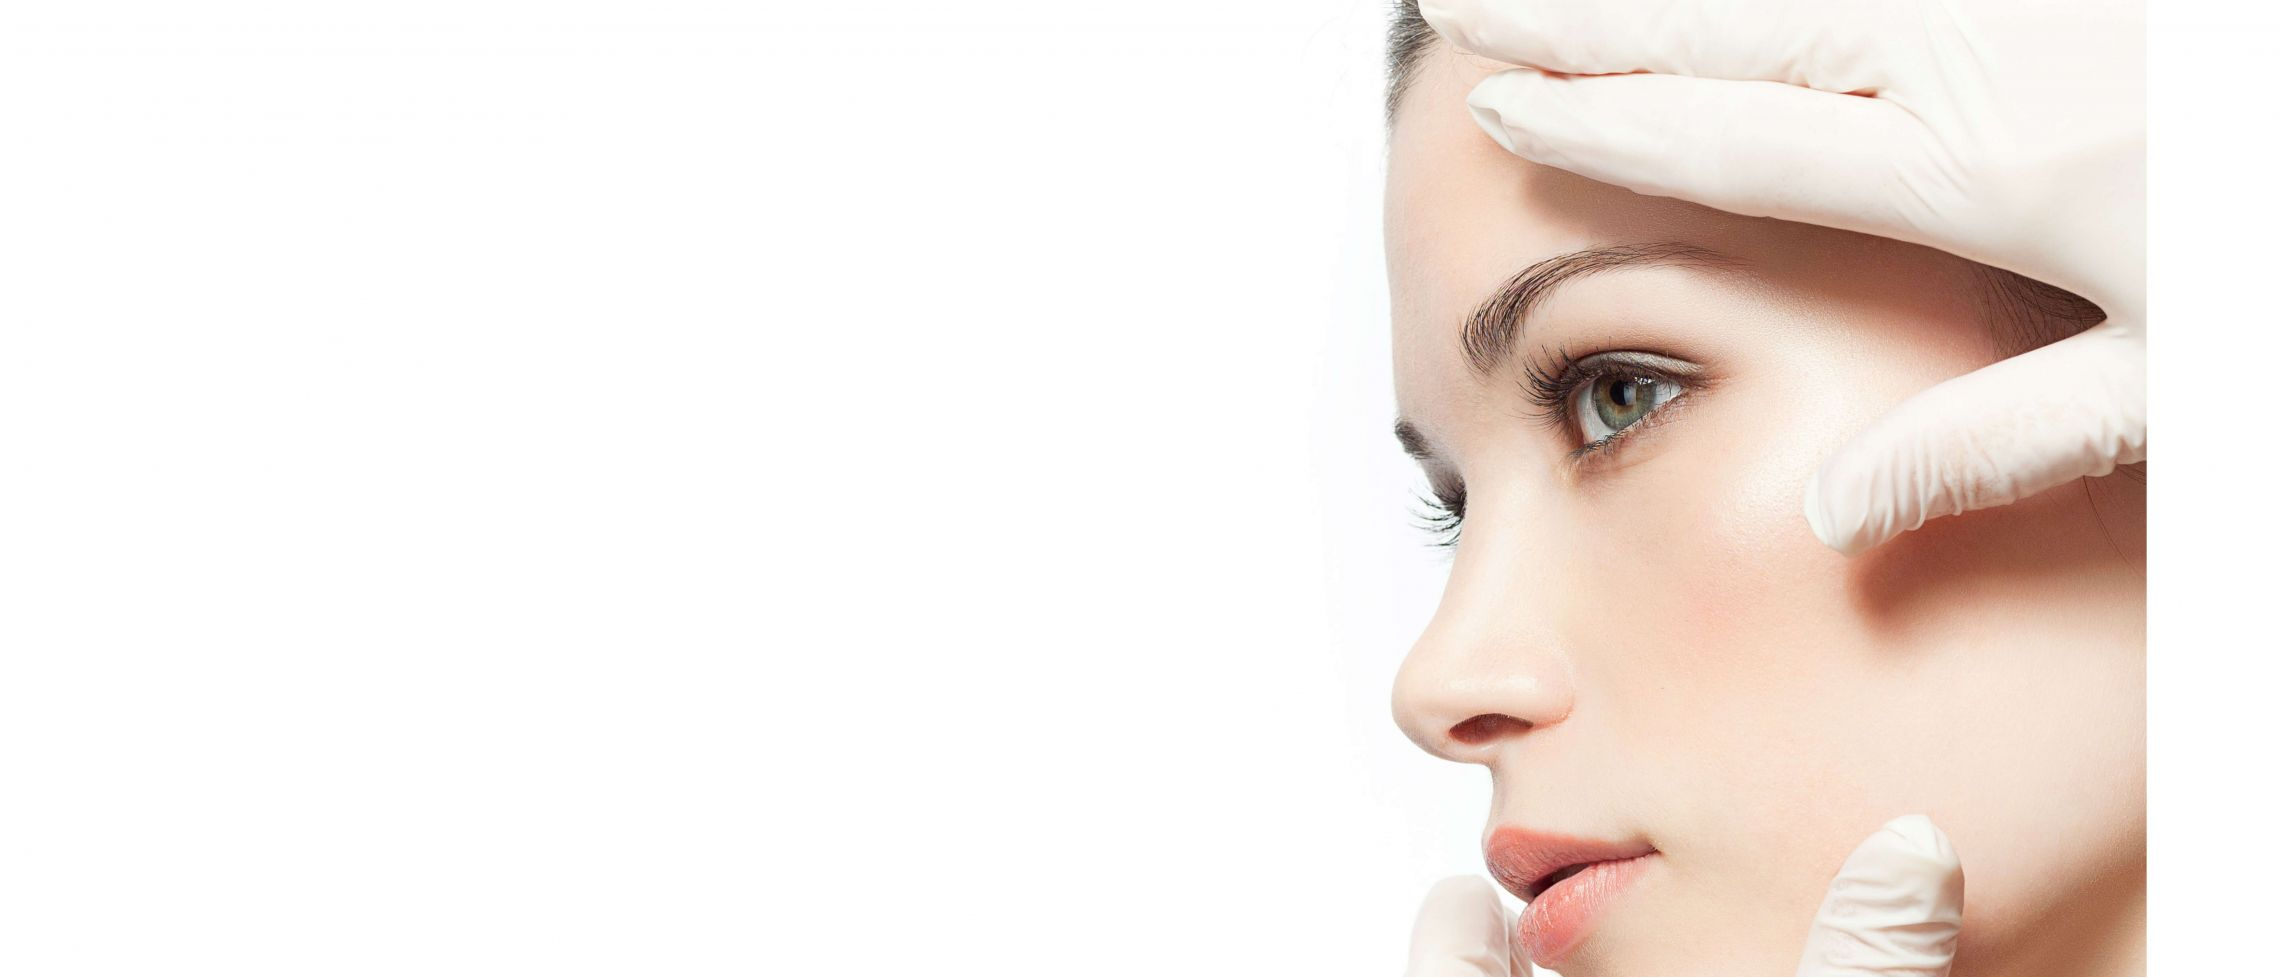 Let's fill you in on (Dermal) Fillers